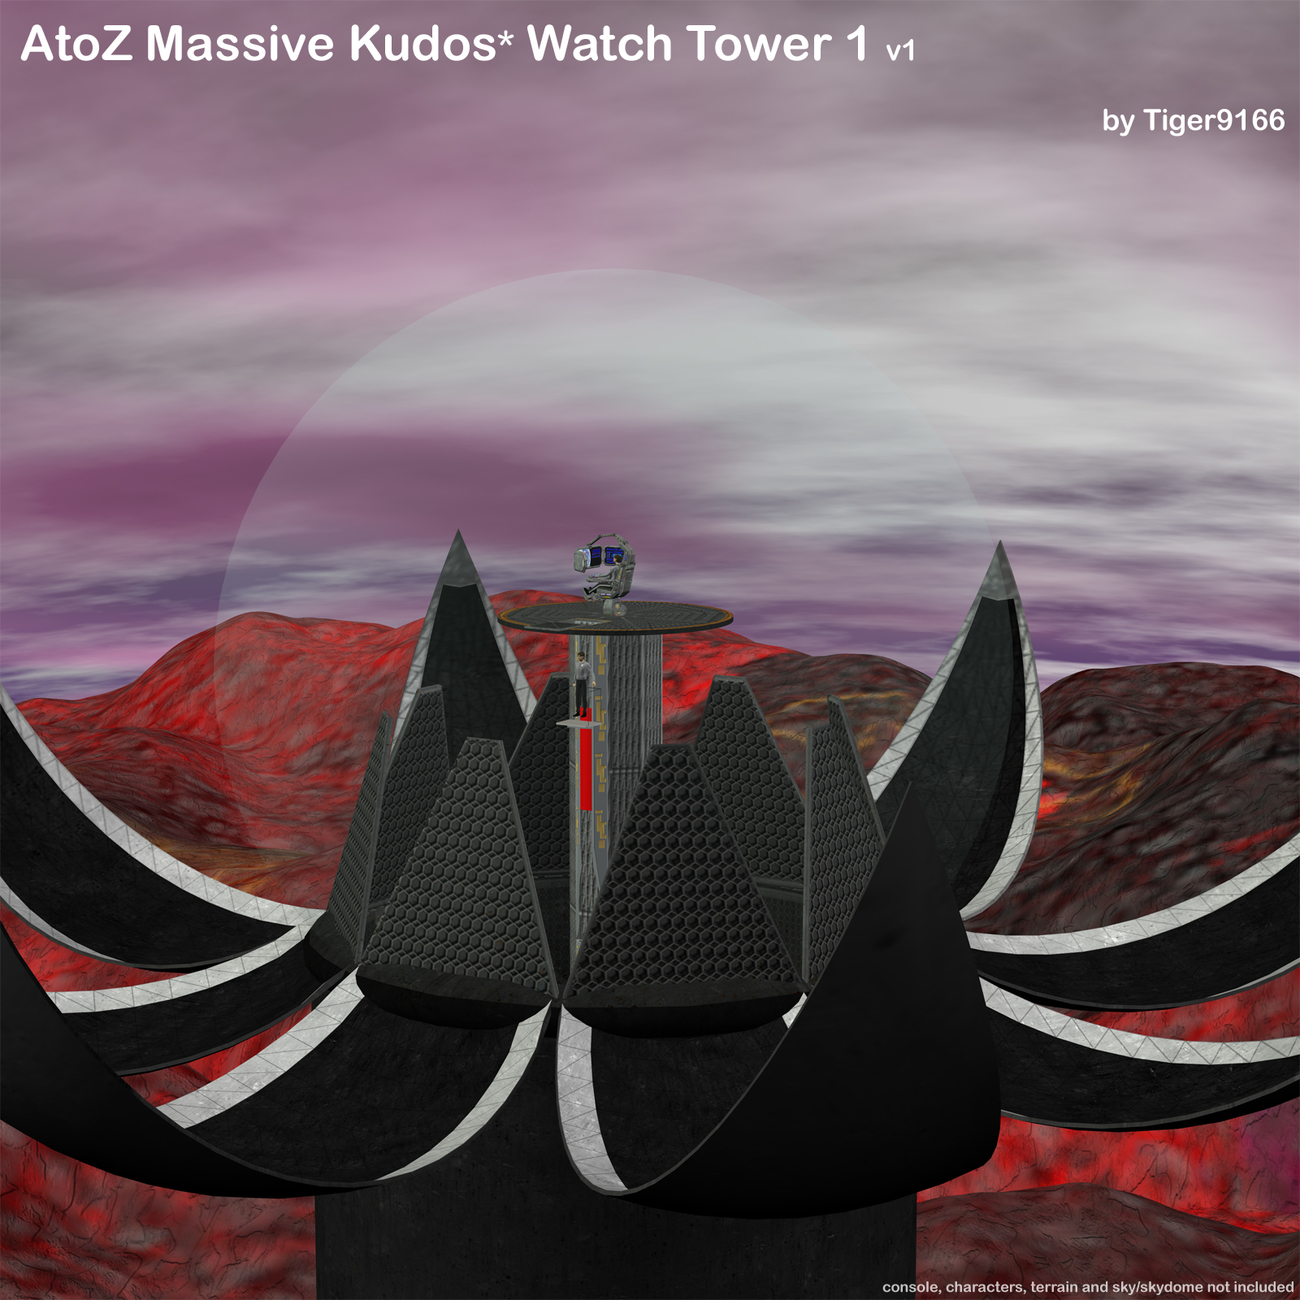 Kudos Watch Tower - Poser 7 Render